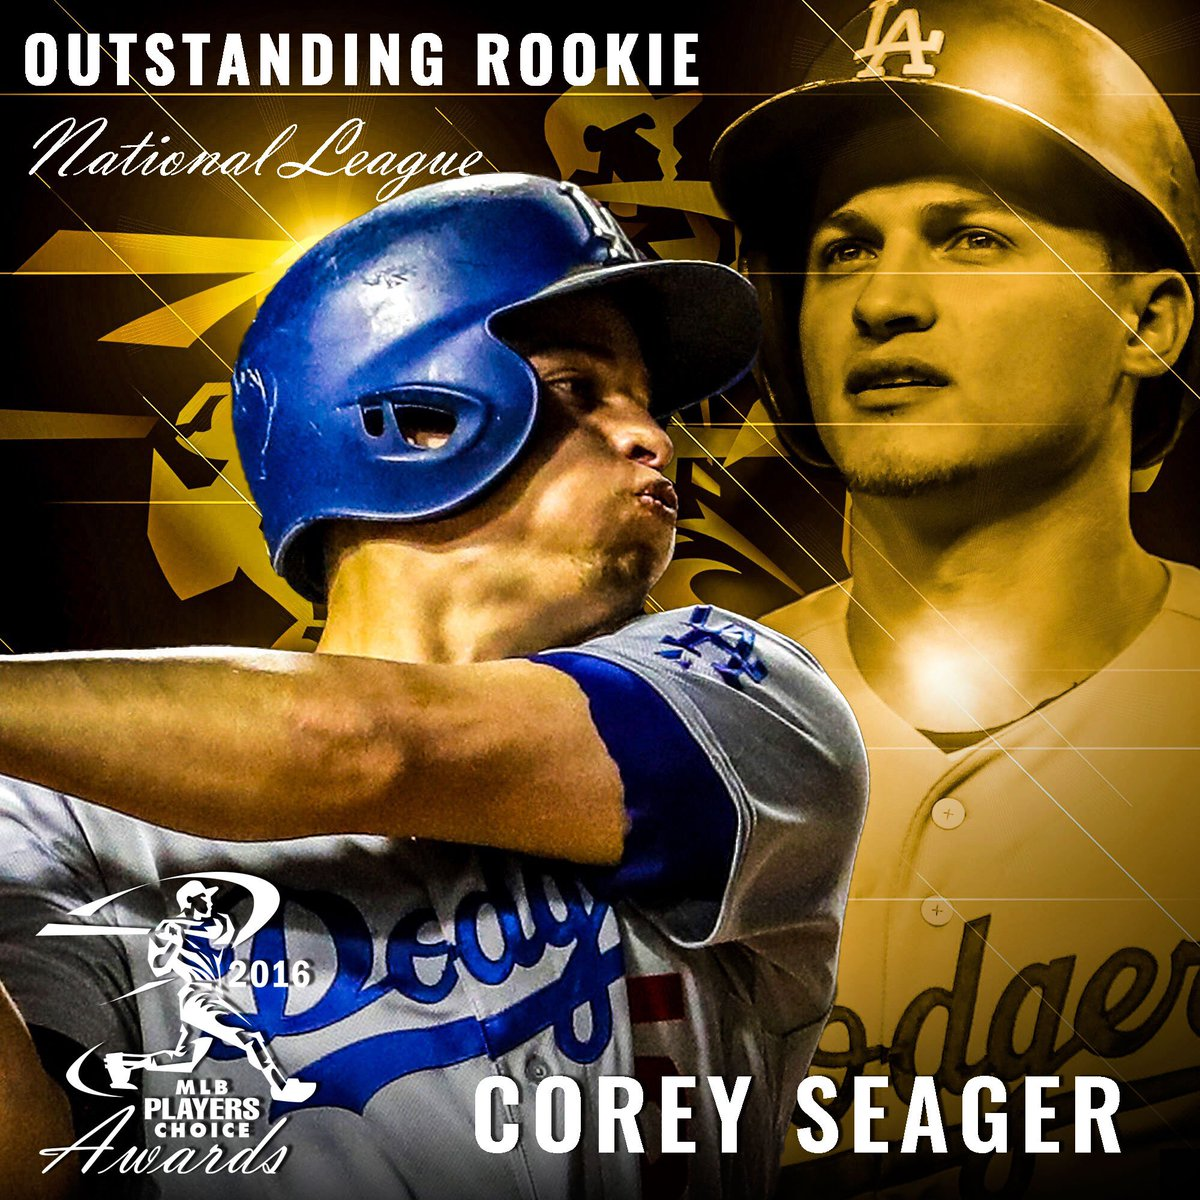 Welcome to @MLBTheShow! Congrats #PlayersChoiceAwards16 NL #OutstandingRookie @coreyseager_5 @Dodgers https://t.co/f4MJBiRHwU